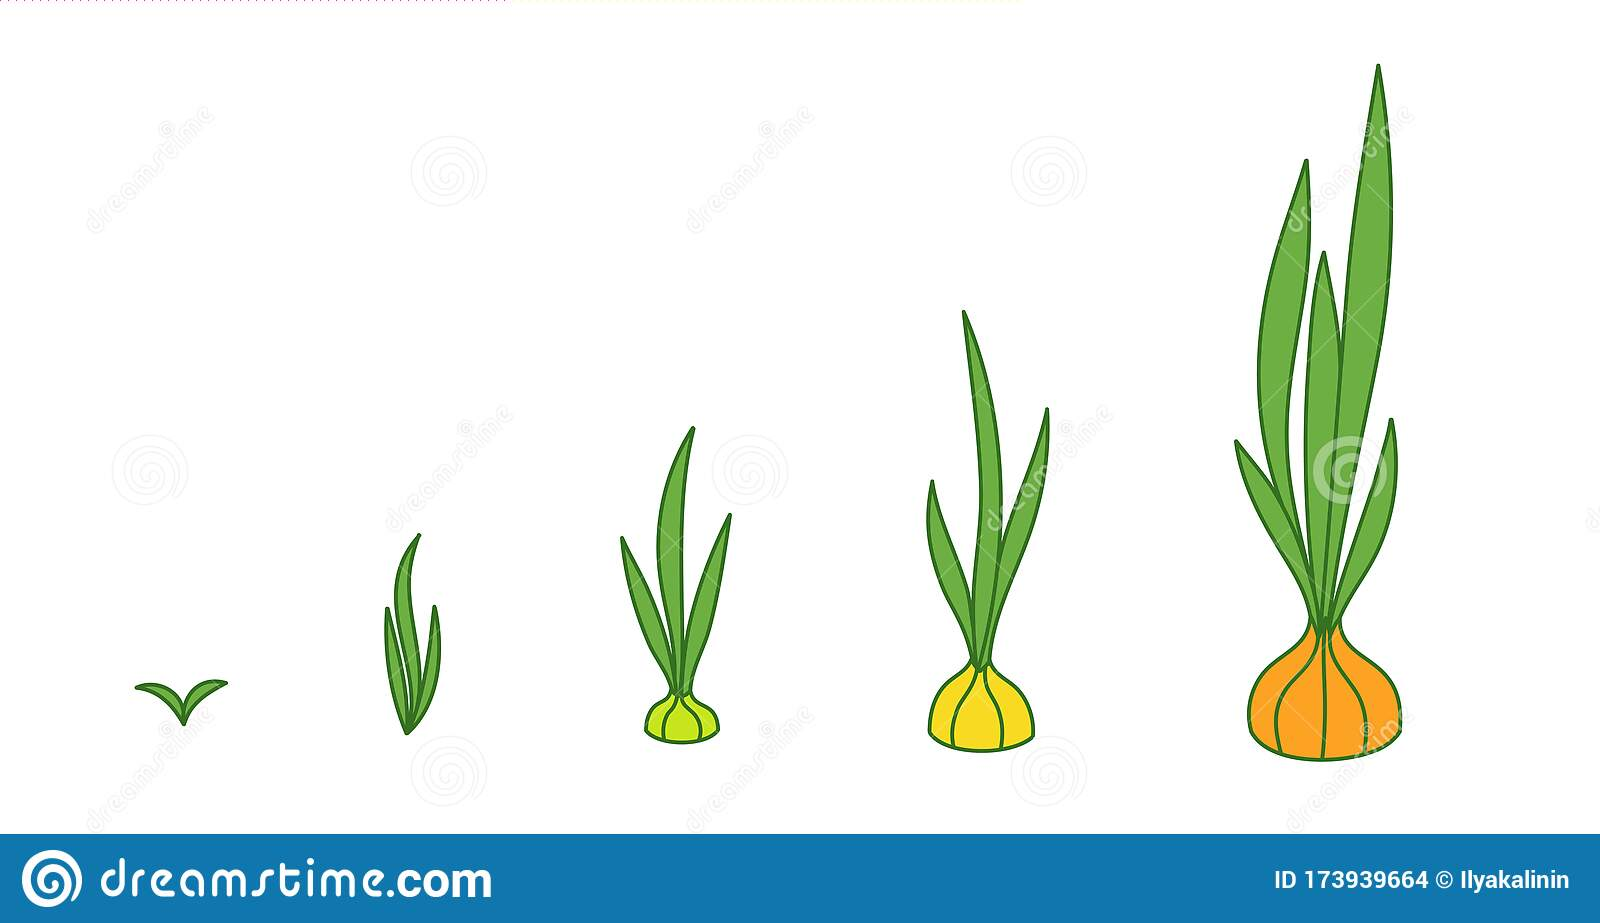 Onion Plant. Growth Stages. Ripening Period. The Life ...